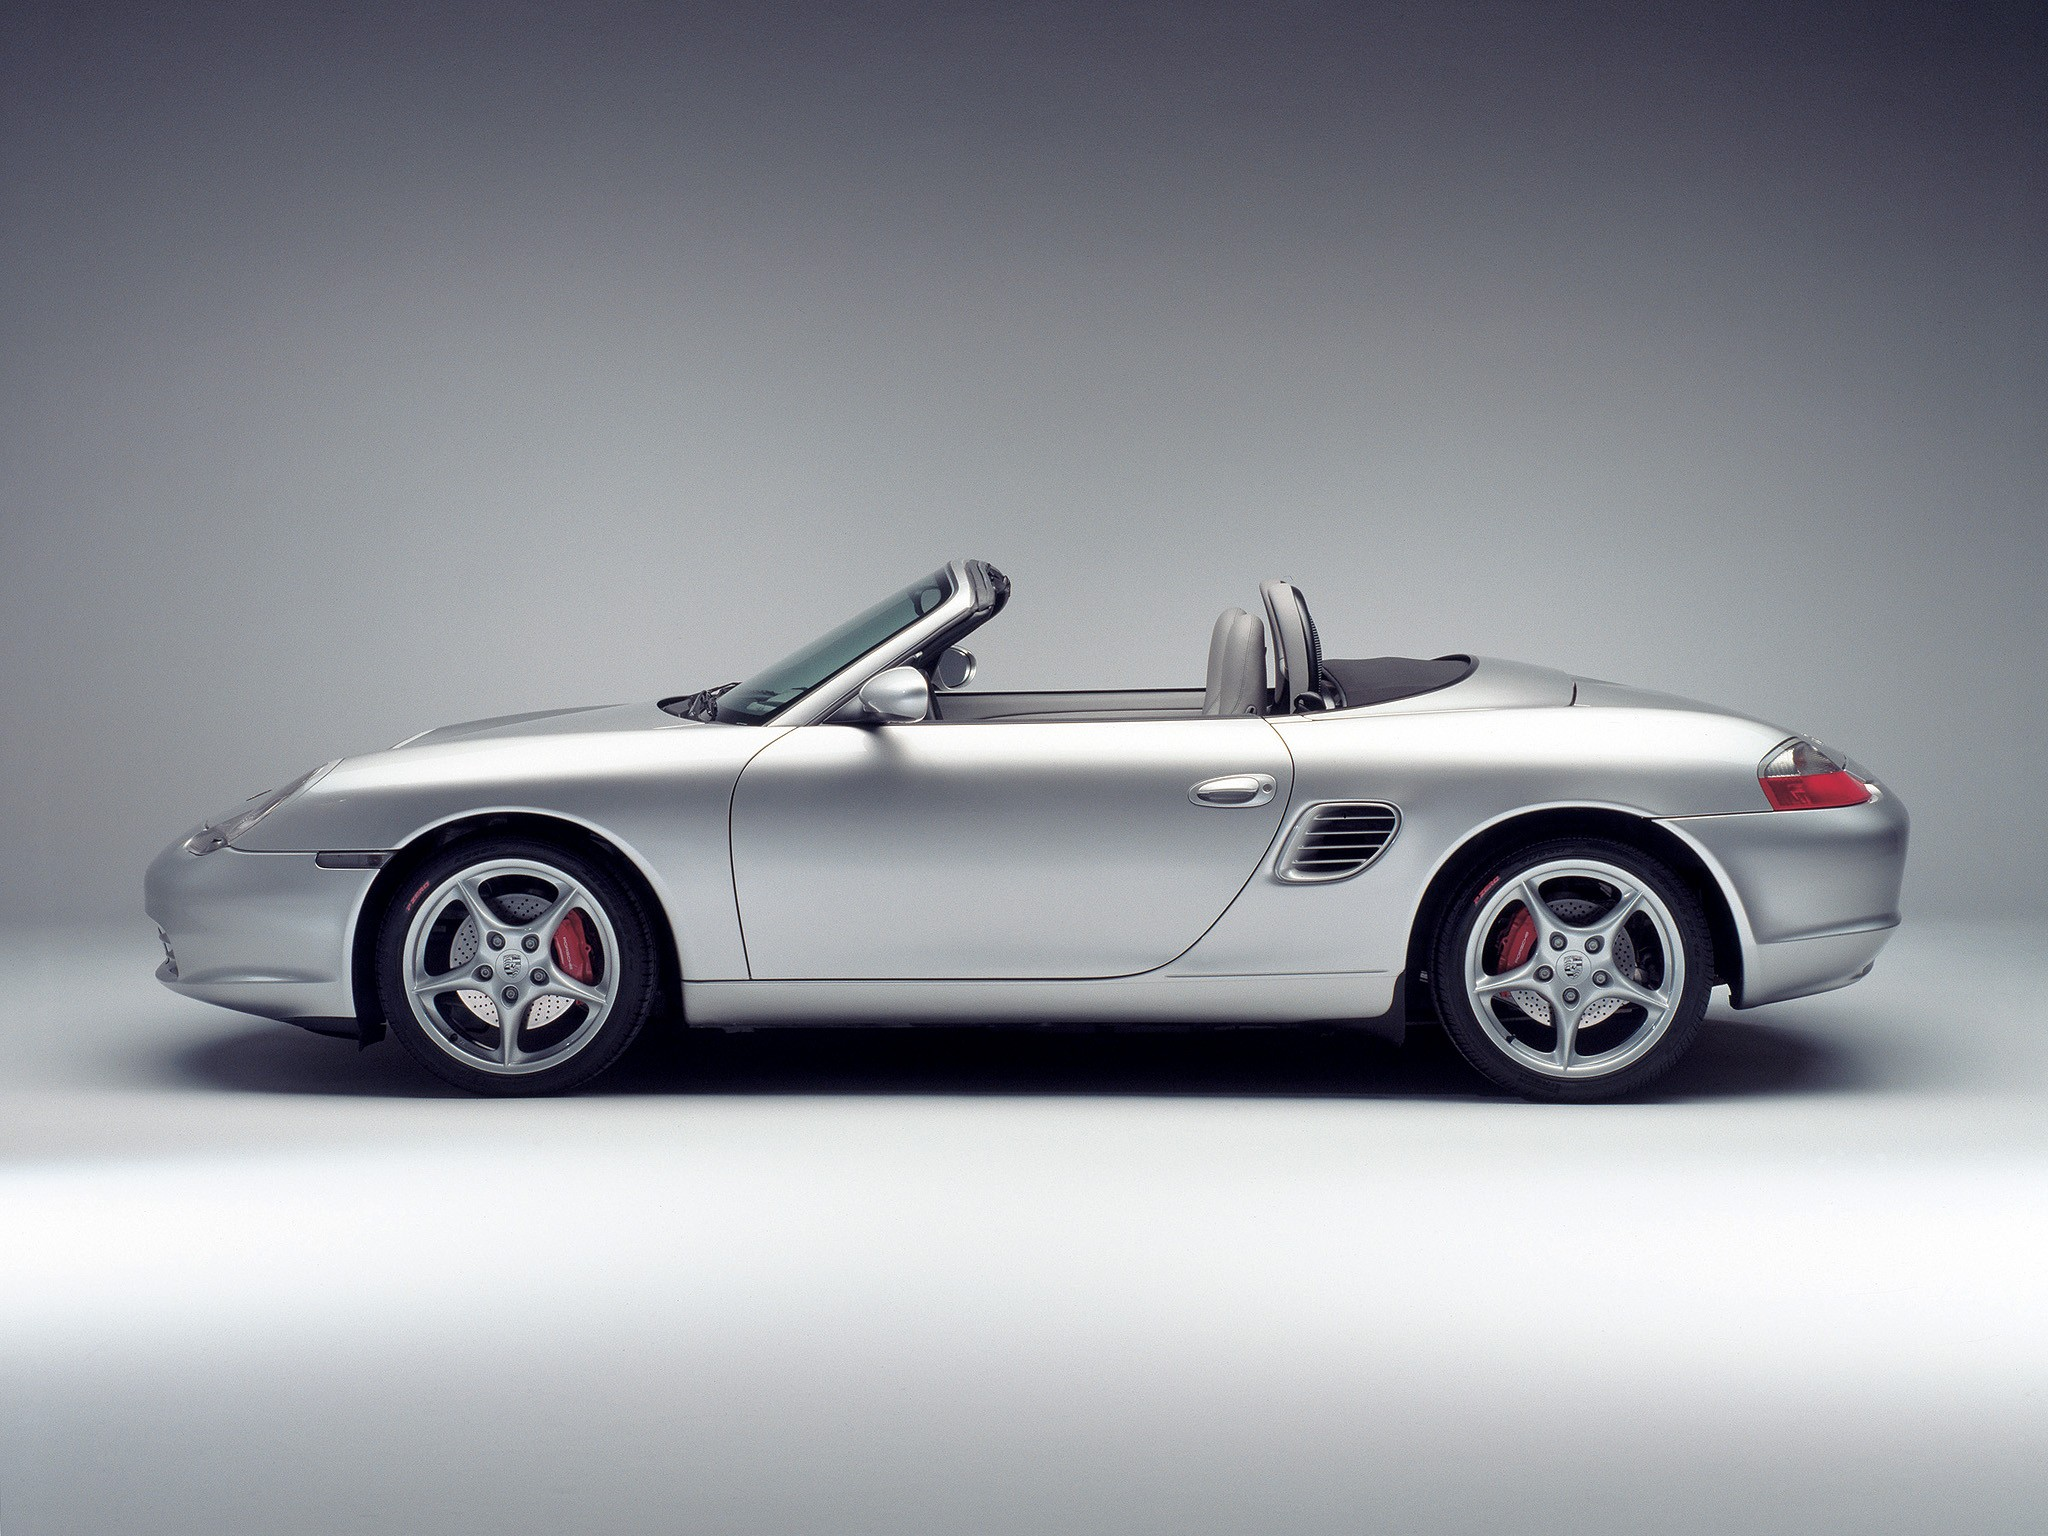 porsche boxster s 986 specs 2002 2003 2004 2005. Black Bedroom Furniture Sets. Home Design Ideas